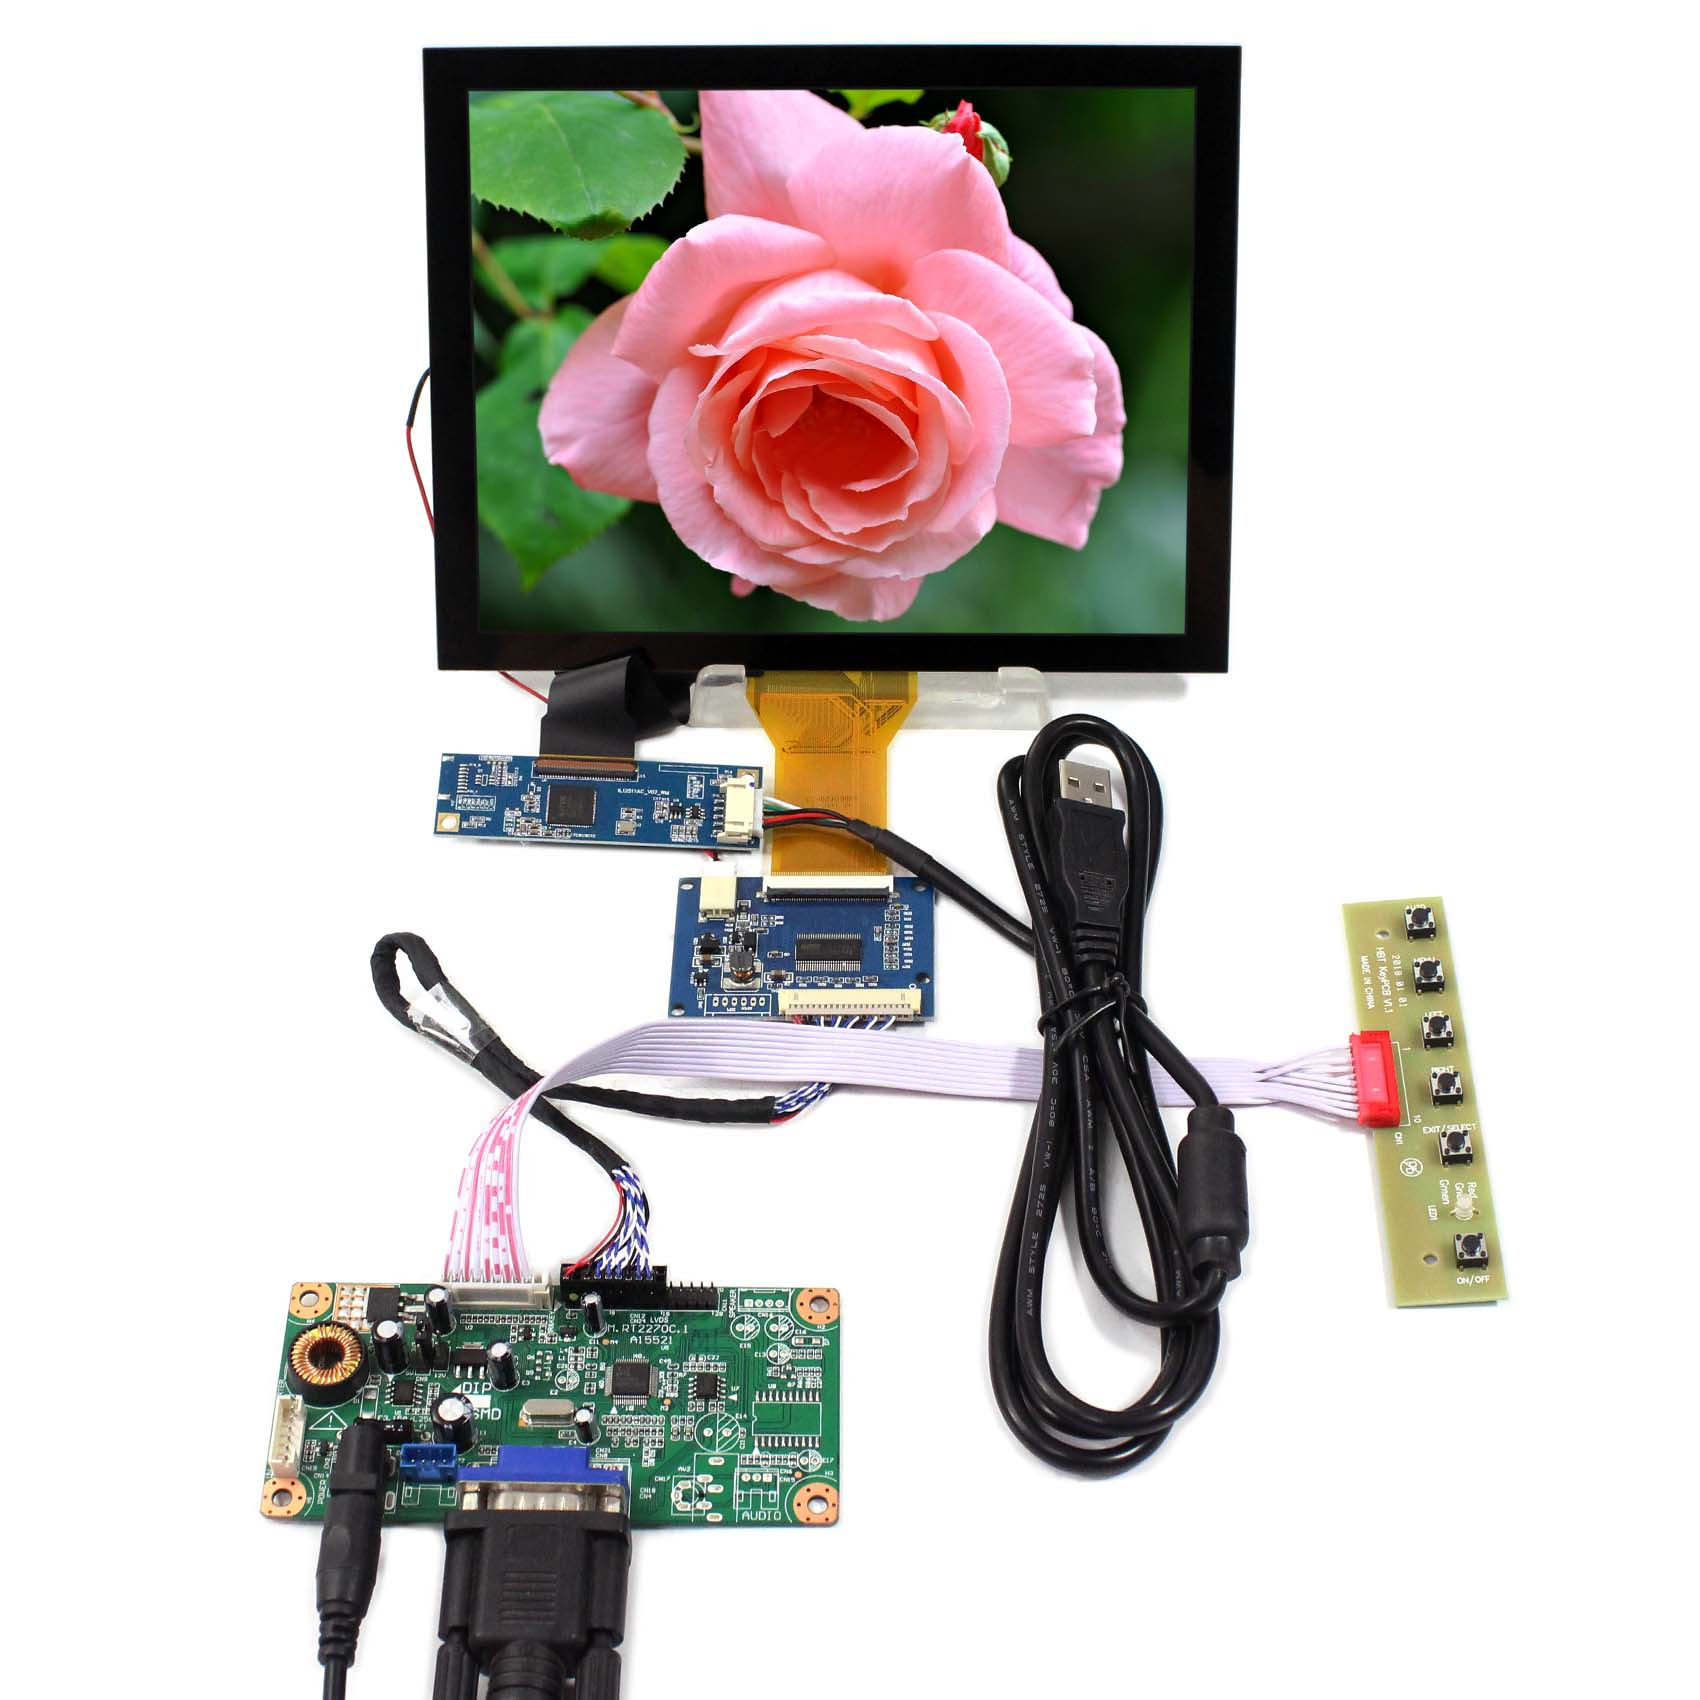 VGA LCD Controller Board 8 800X600 Capacitive Touch Panel EJ080NA-05A Backlight WLED RT2270C-A VS080TC-A1 8inch LCD Screen vga lcd controller board rt2270c 8 4inch 640x480 aa084vc03 lcd screen